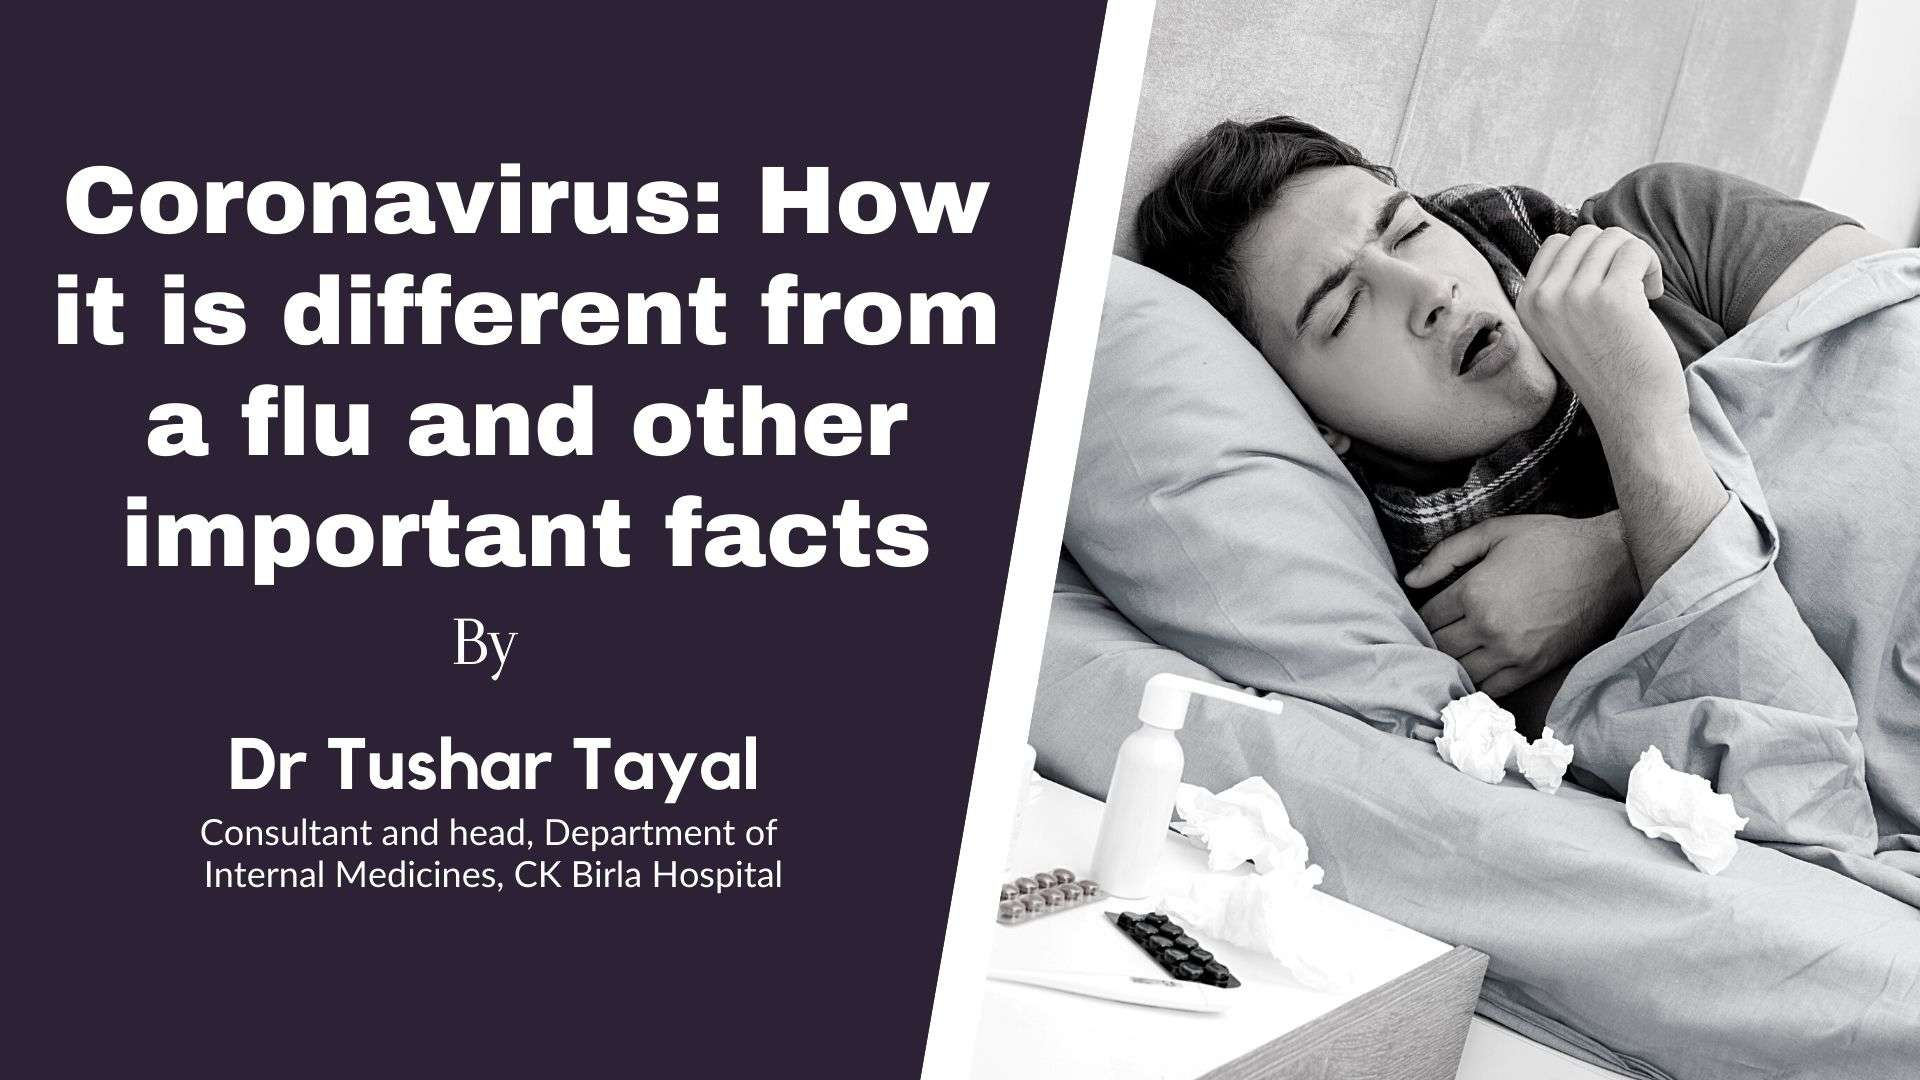 coronavirus-how-it-is-different-from-a-flu-and-other-important-facts